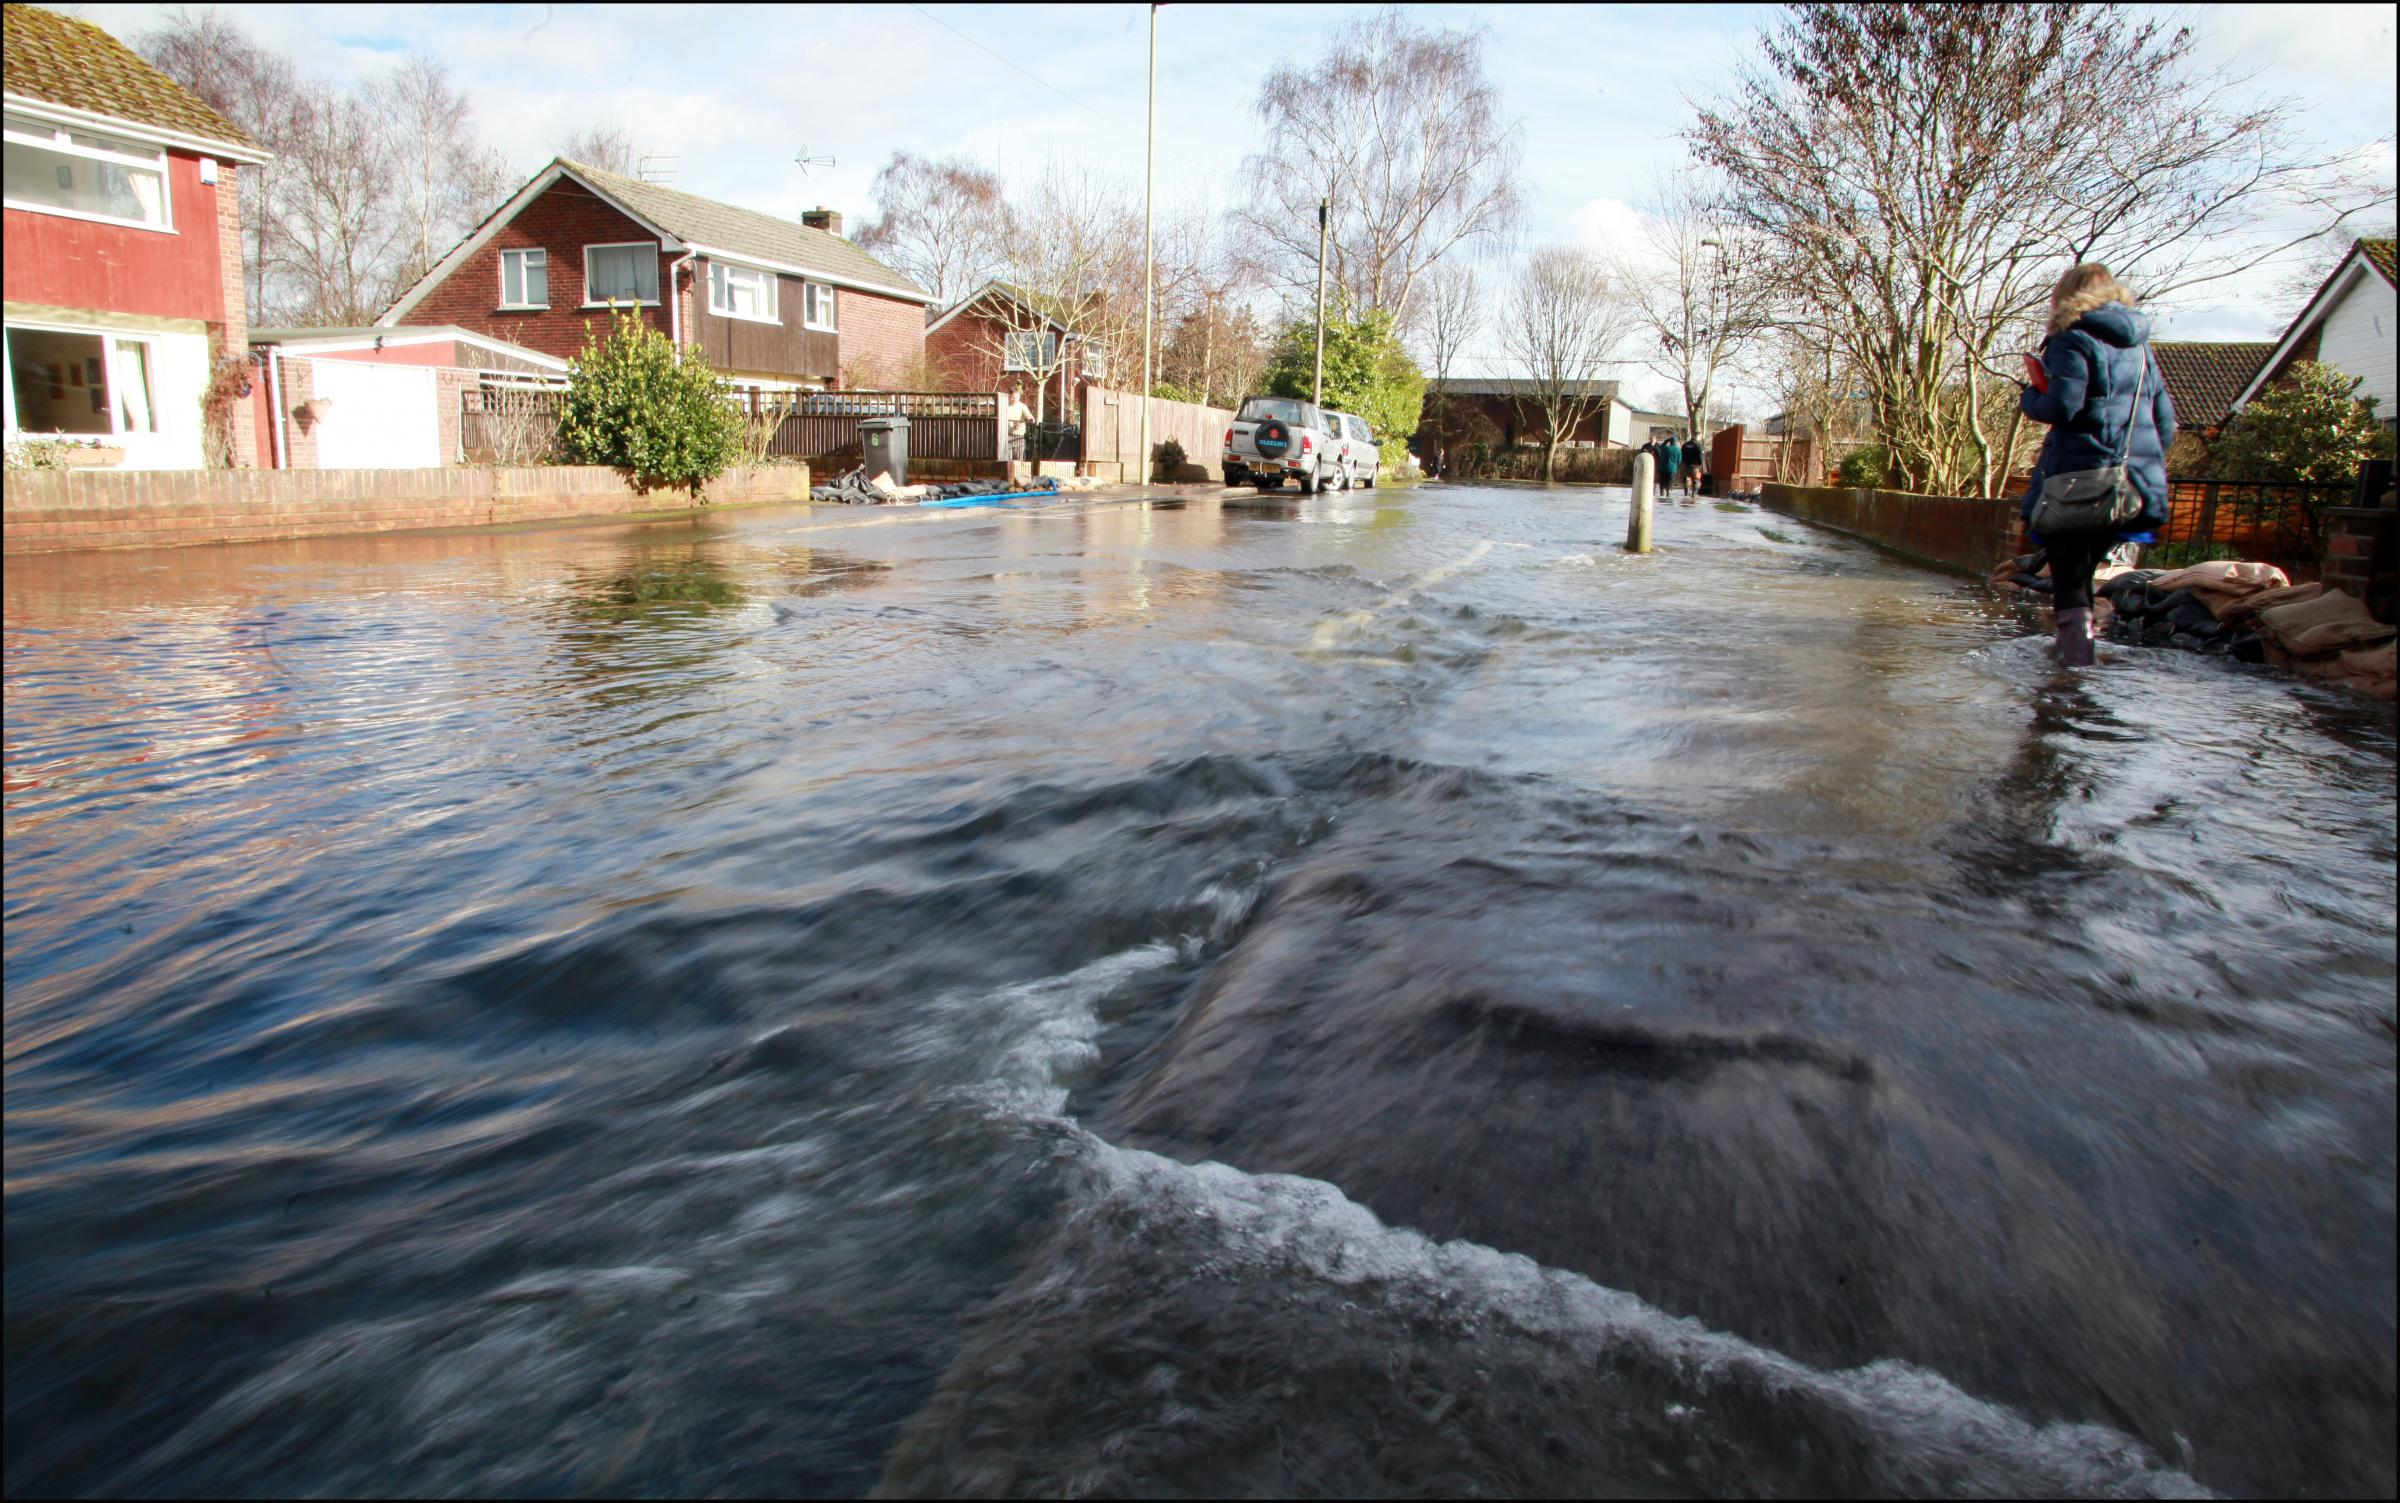 Flooding in Romsey earlier this year.